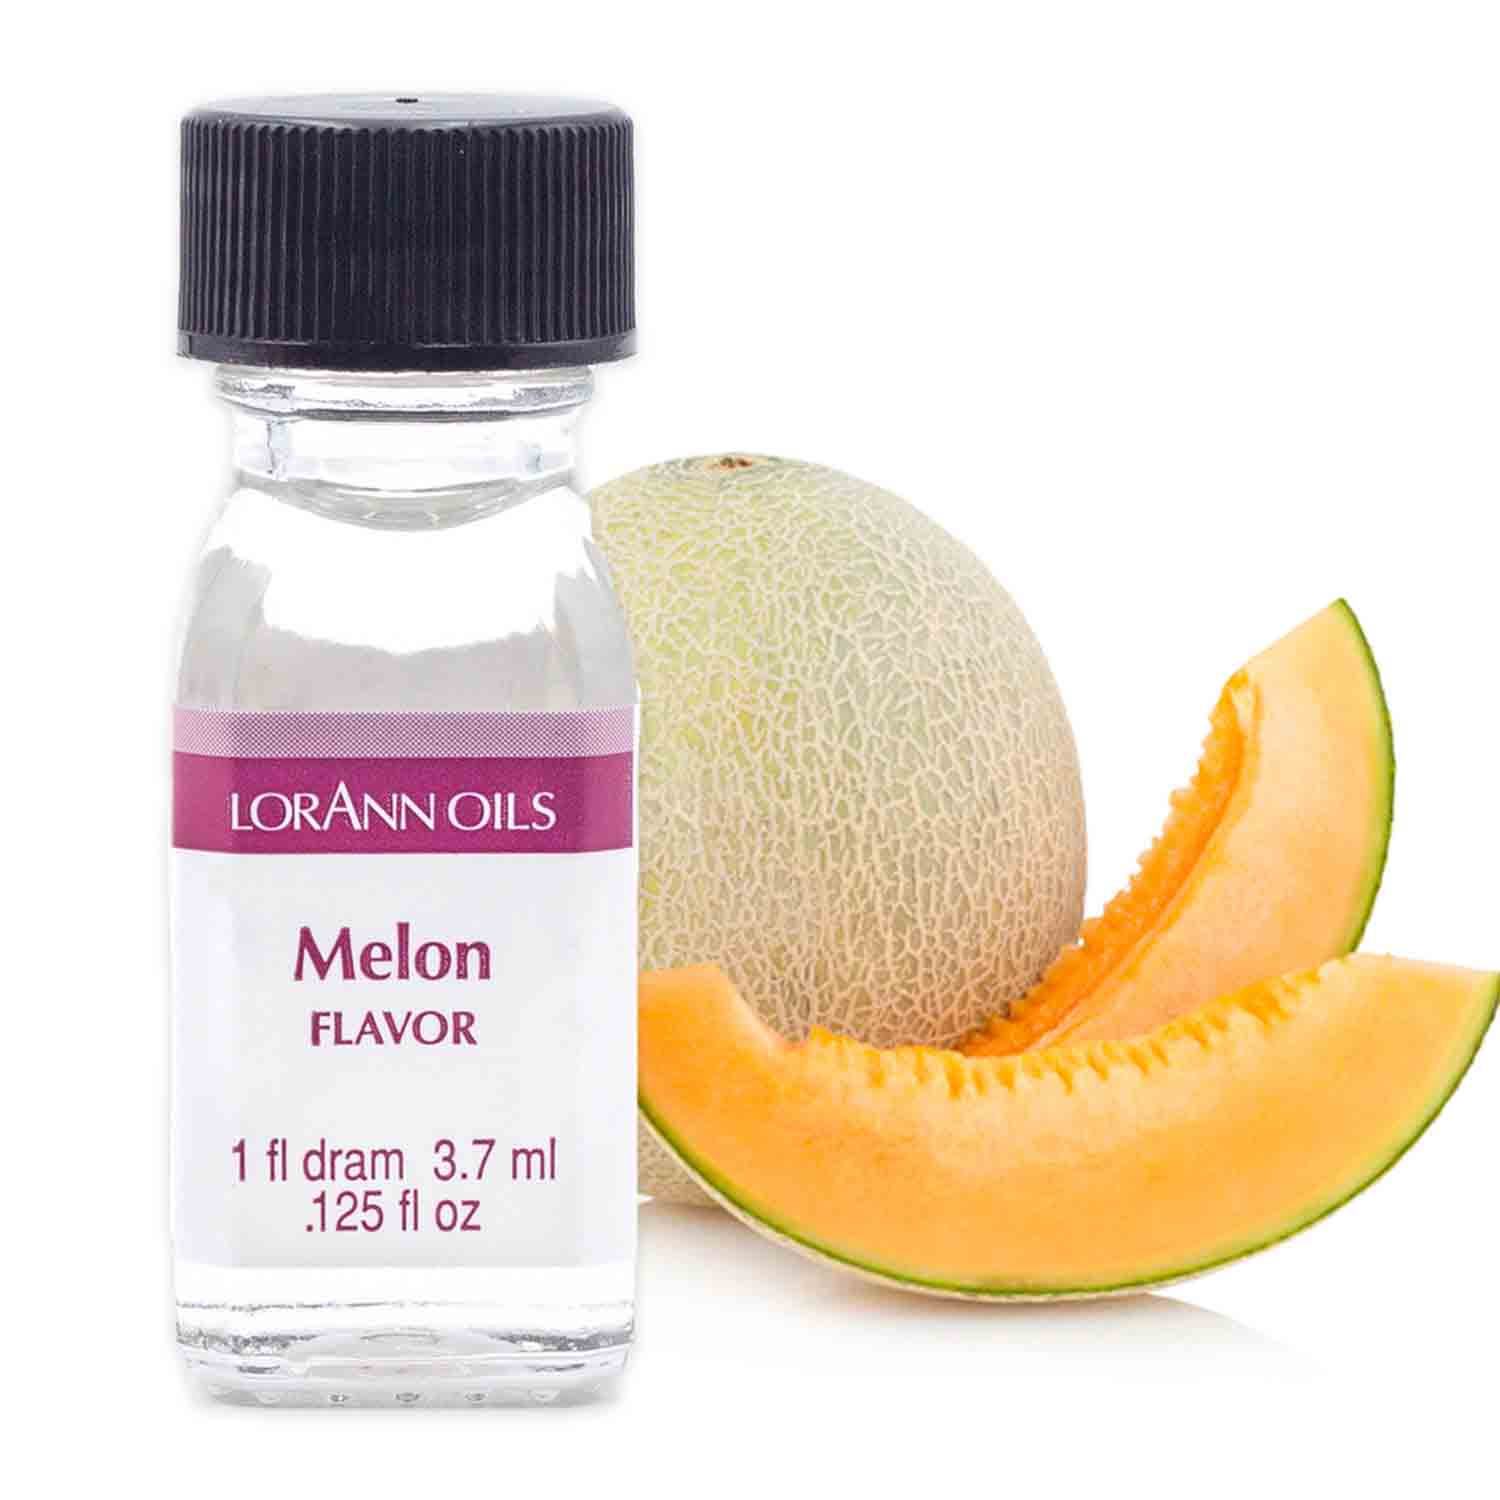 Melon LorAnn Super-Strength Flavor